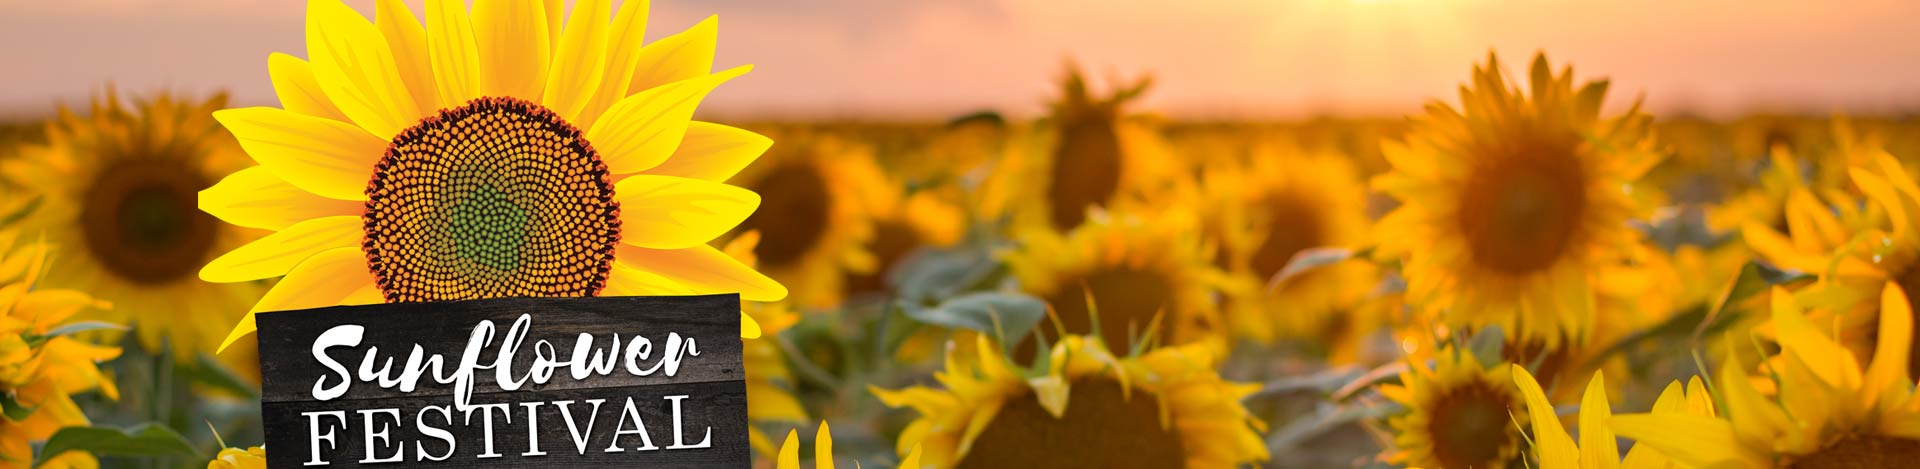 Sunflower Festival at Country Roads Family Fun Farm